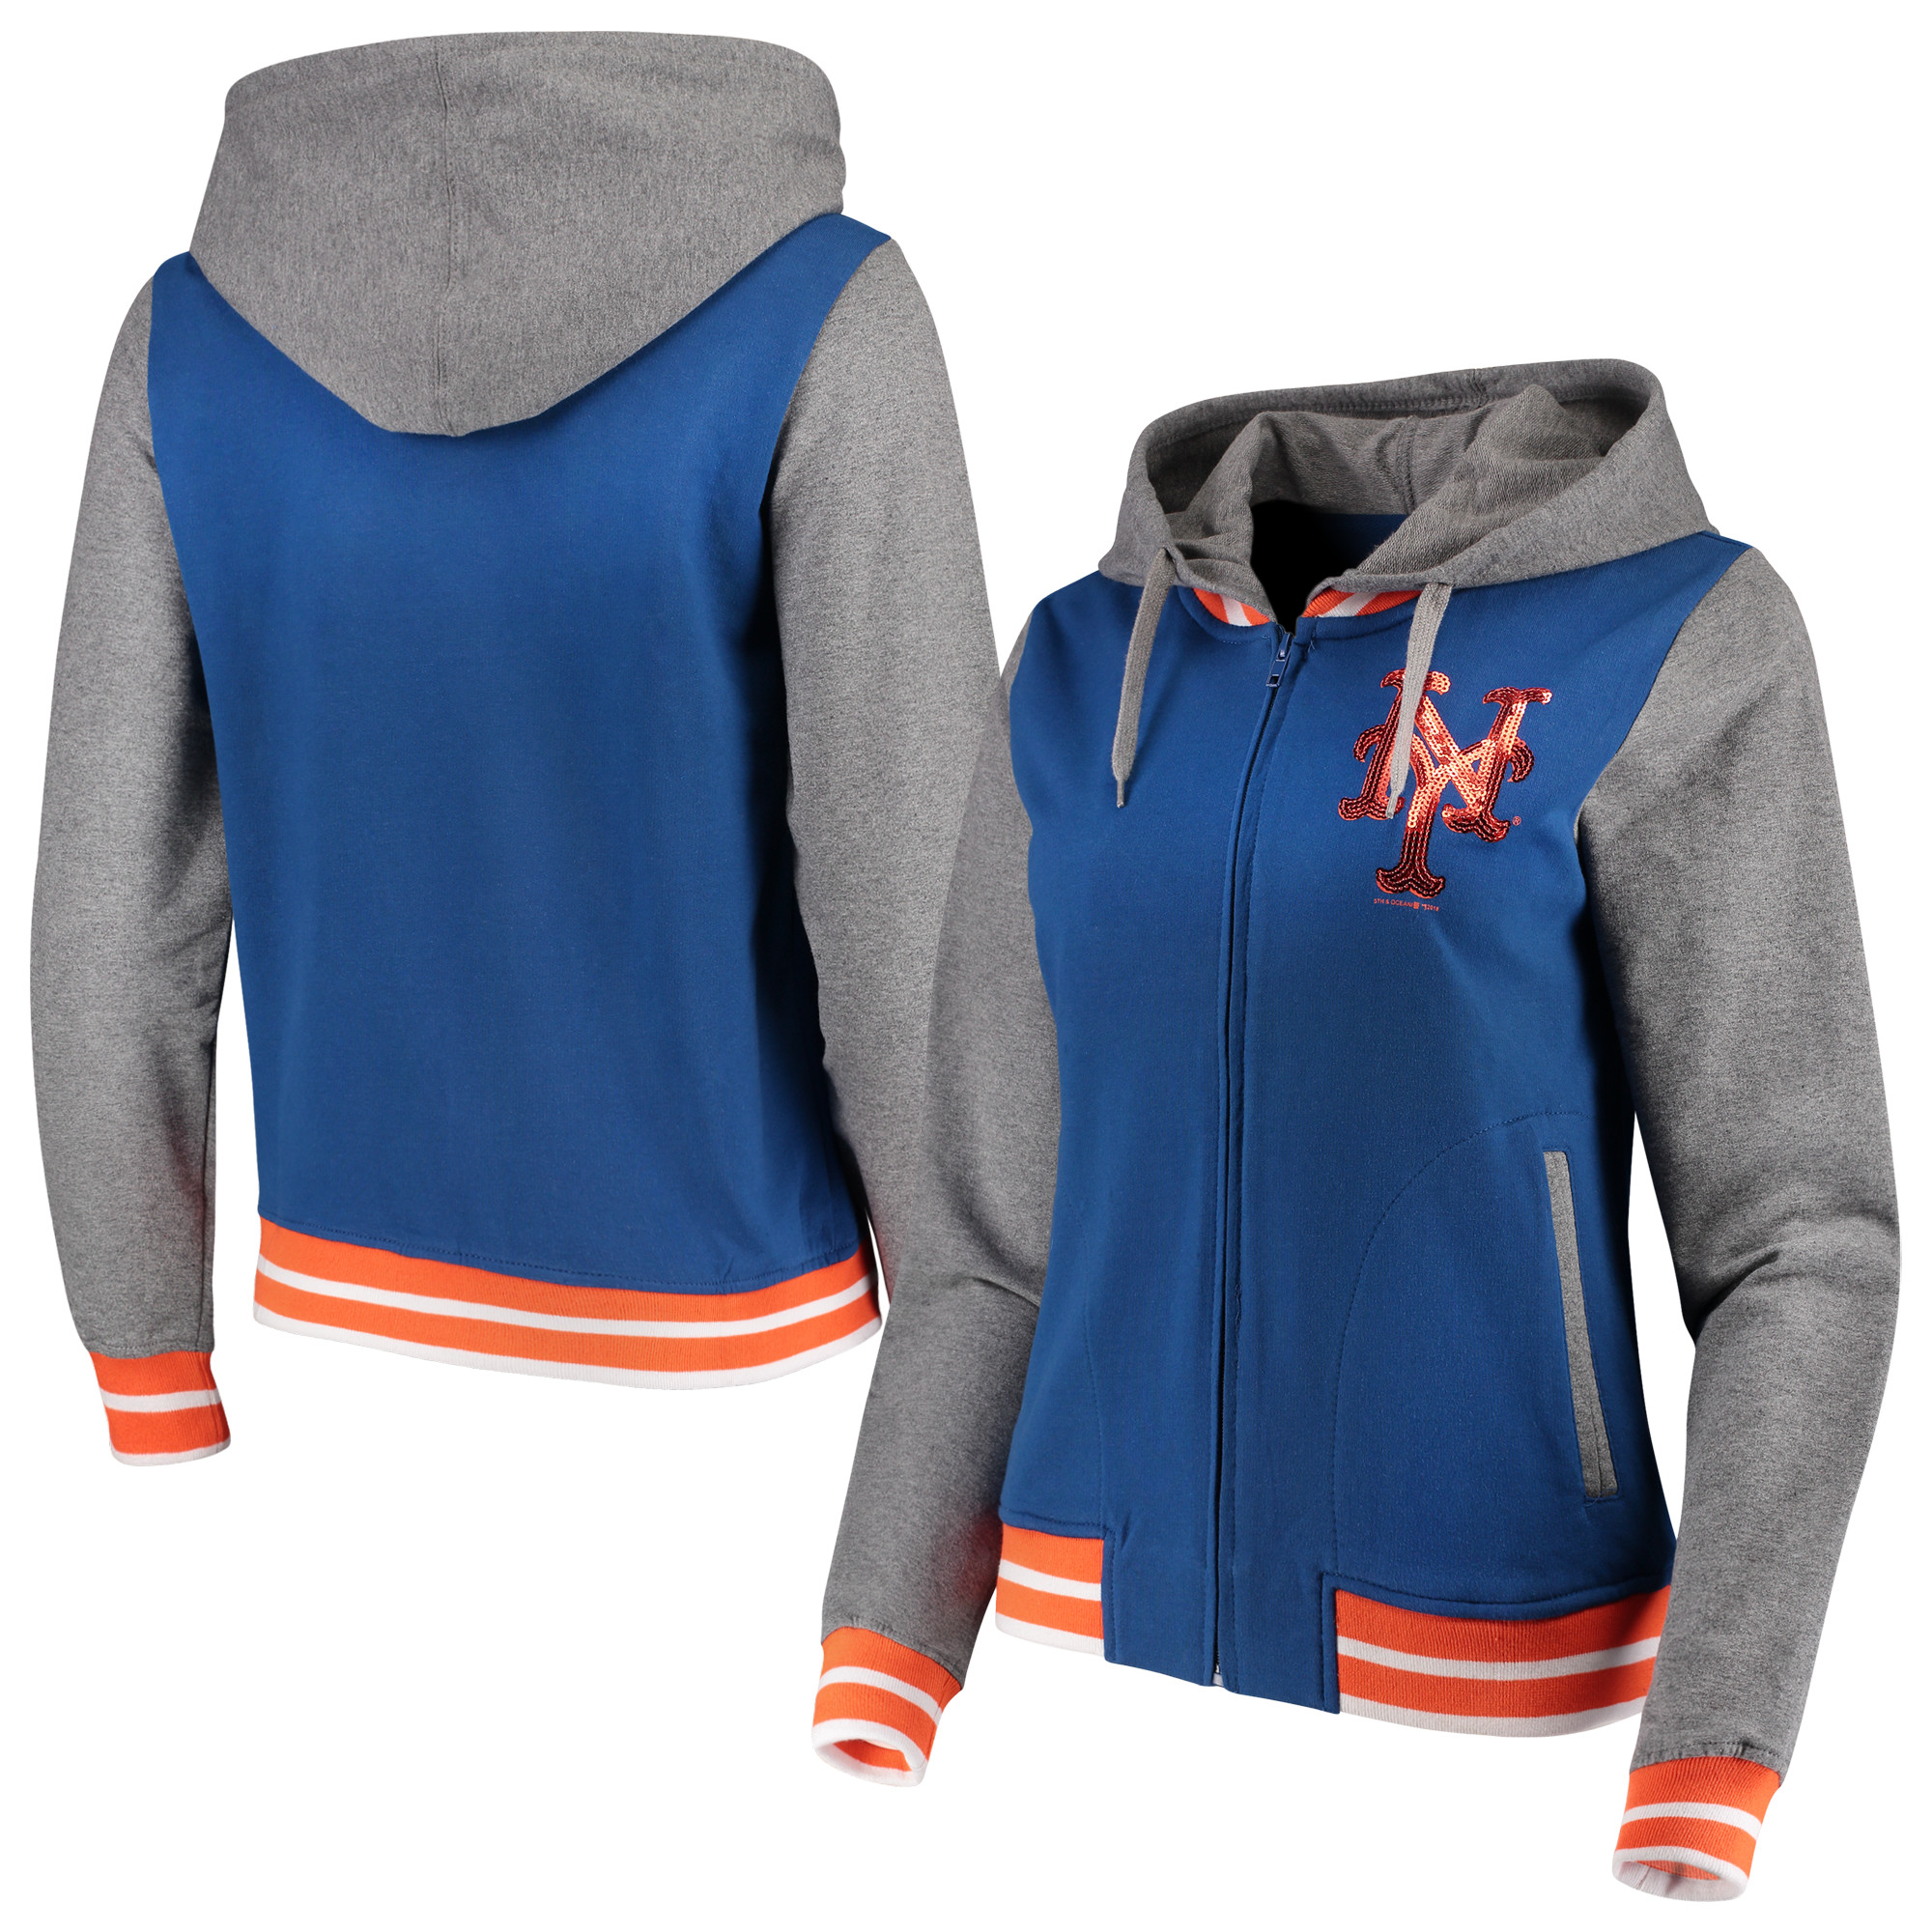 New York Mets 5th & Ocean by New Era Women's French Terry Full-Zip Hoodie - Royal/Gray